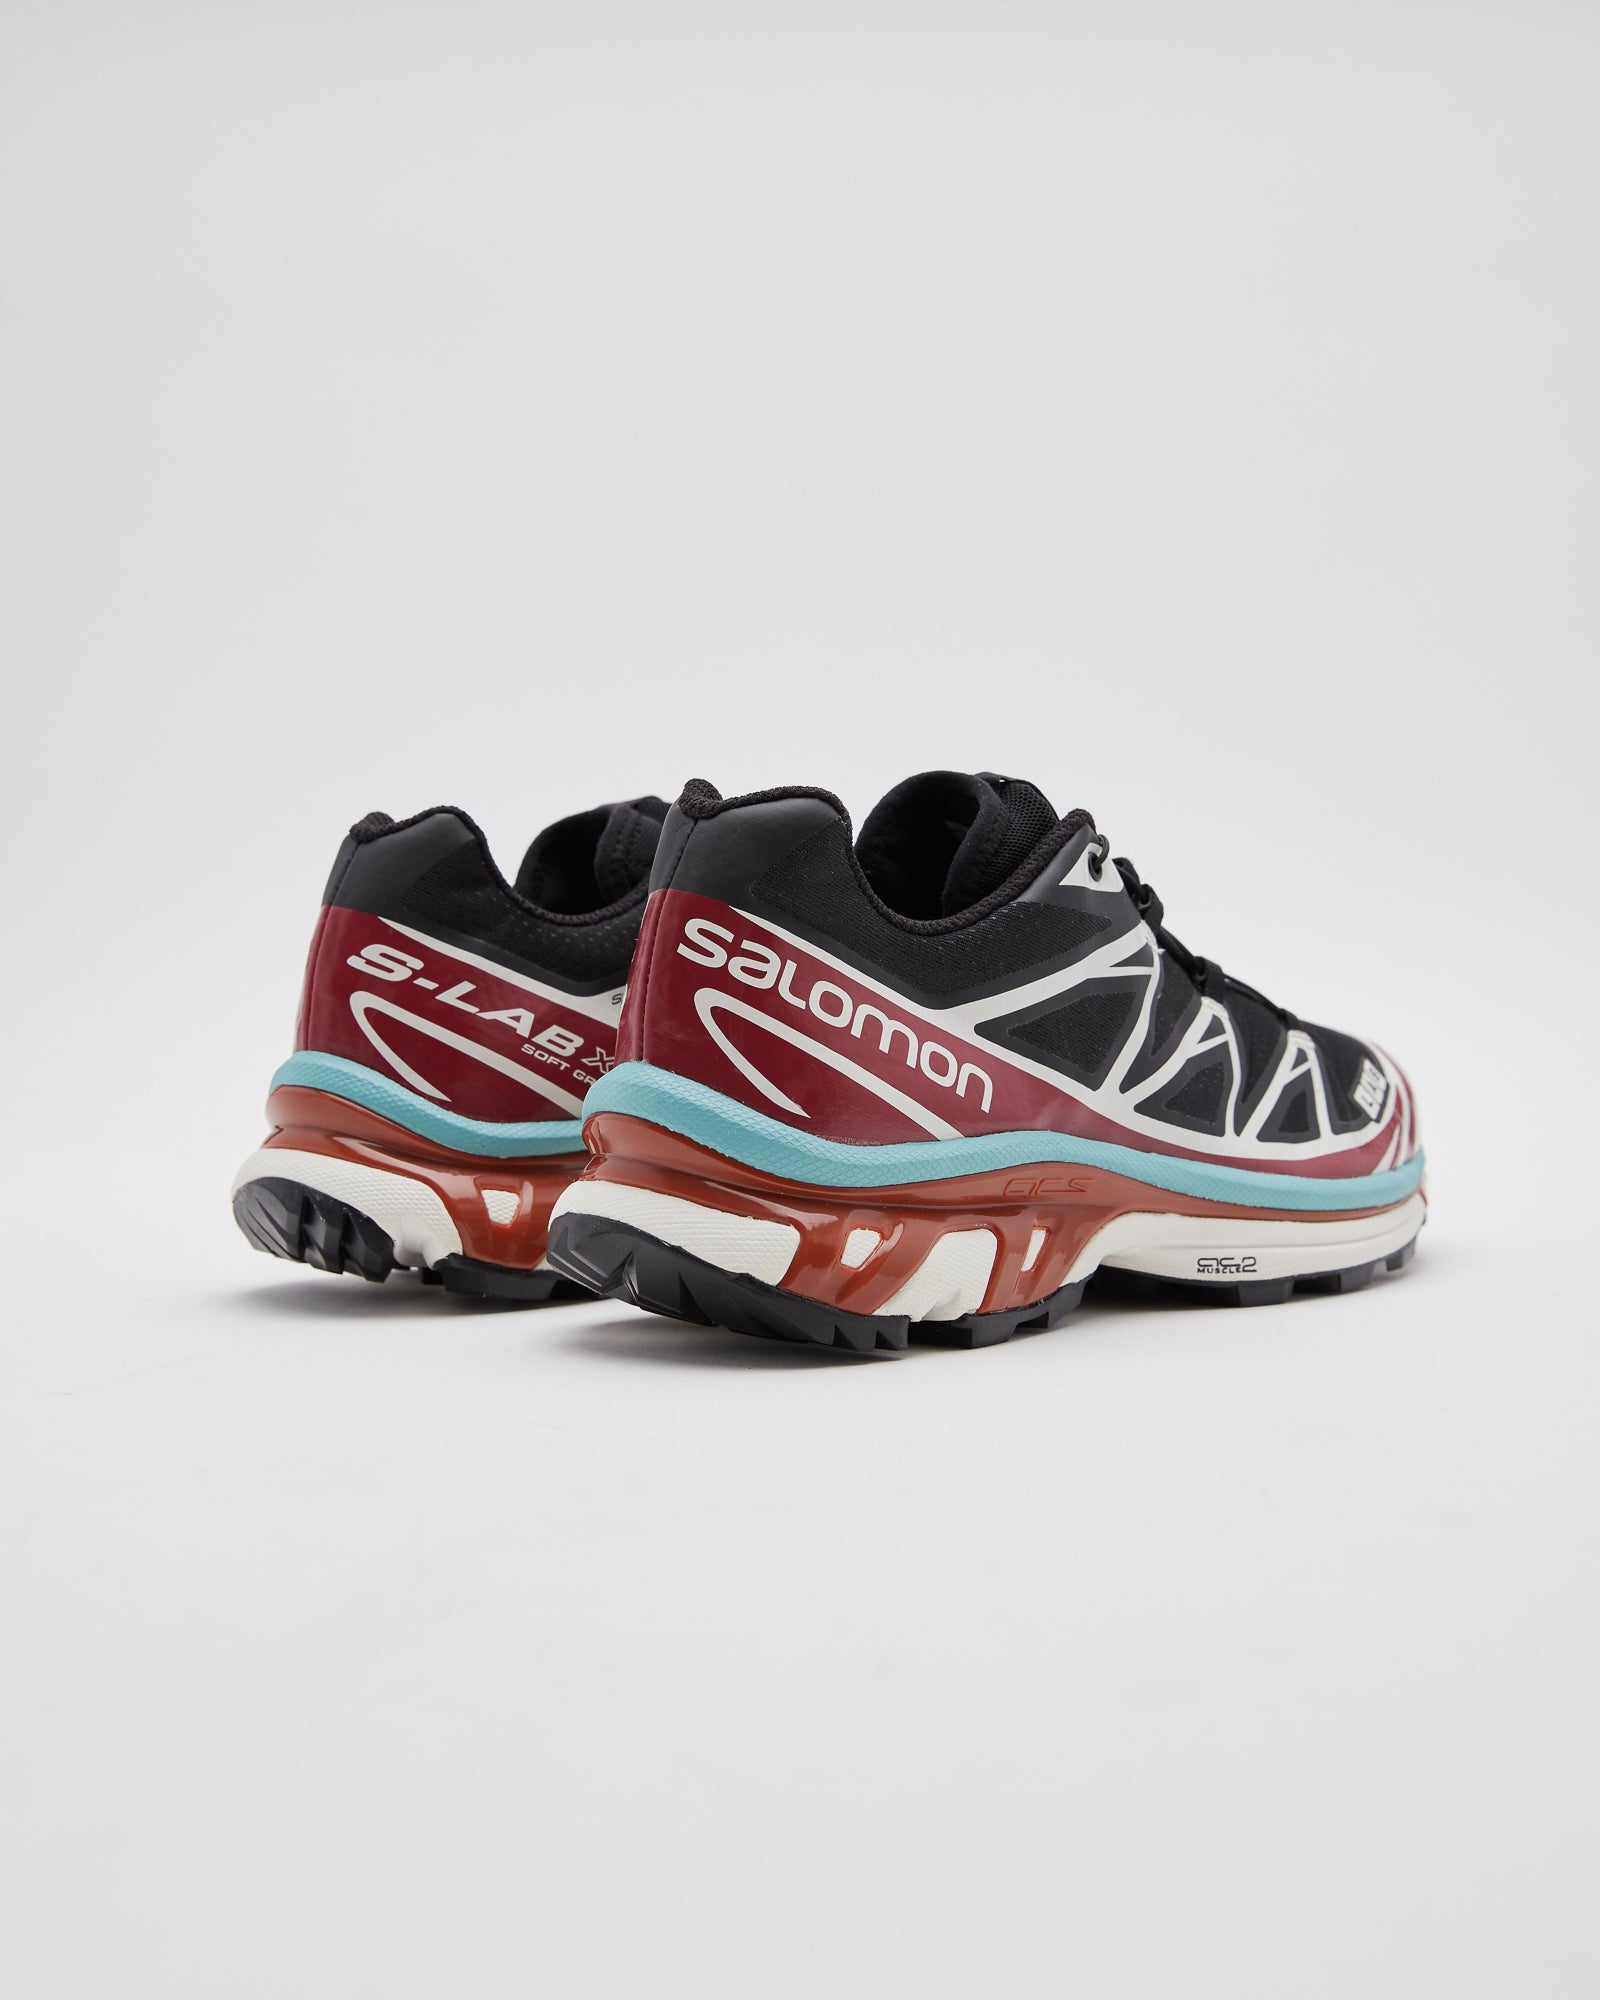 XT-6 ADV Sneakers in Black/Red Dahlia/Meadowbrook